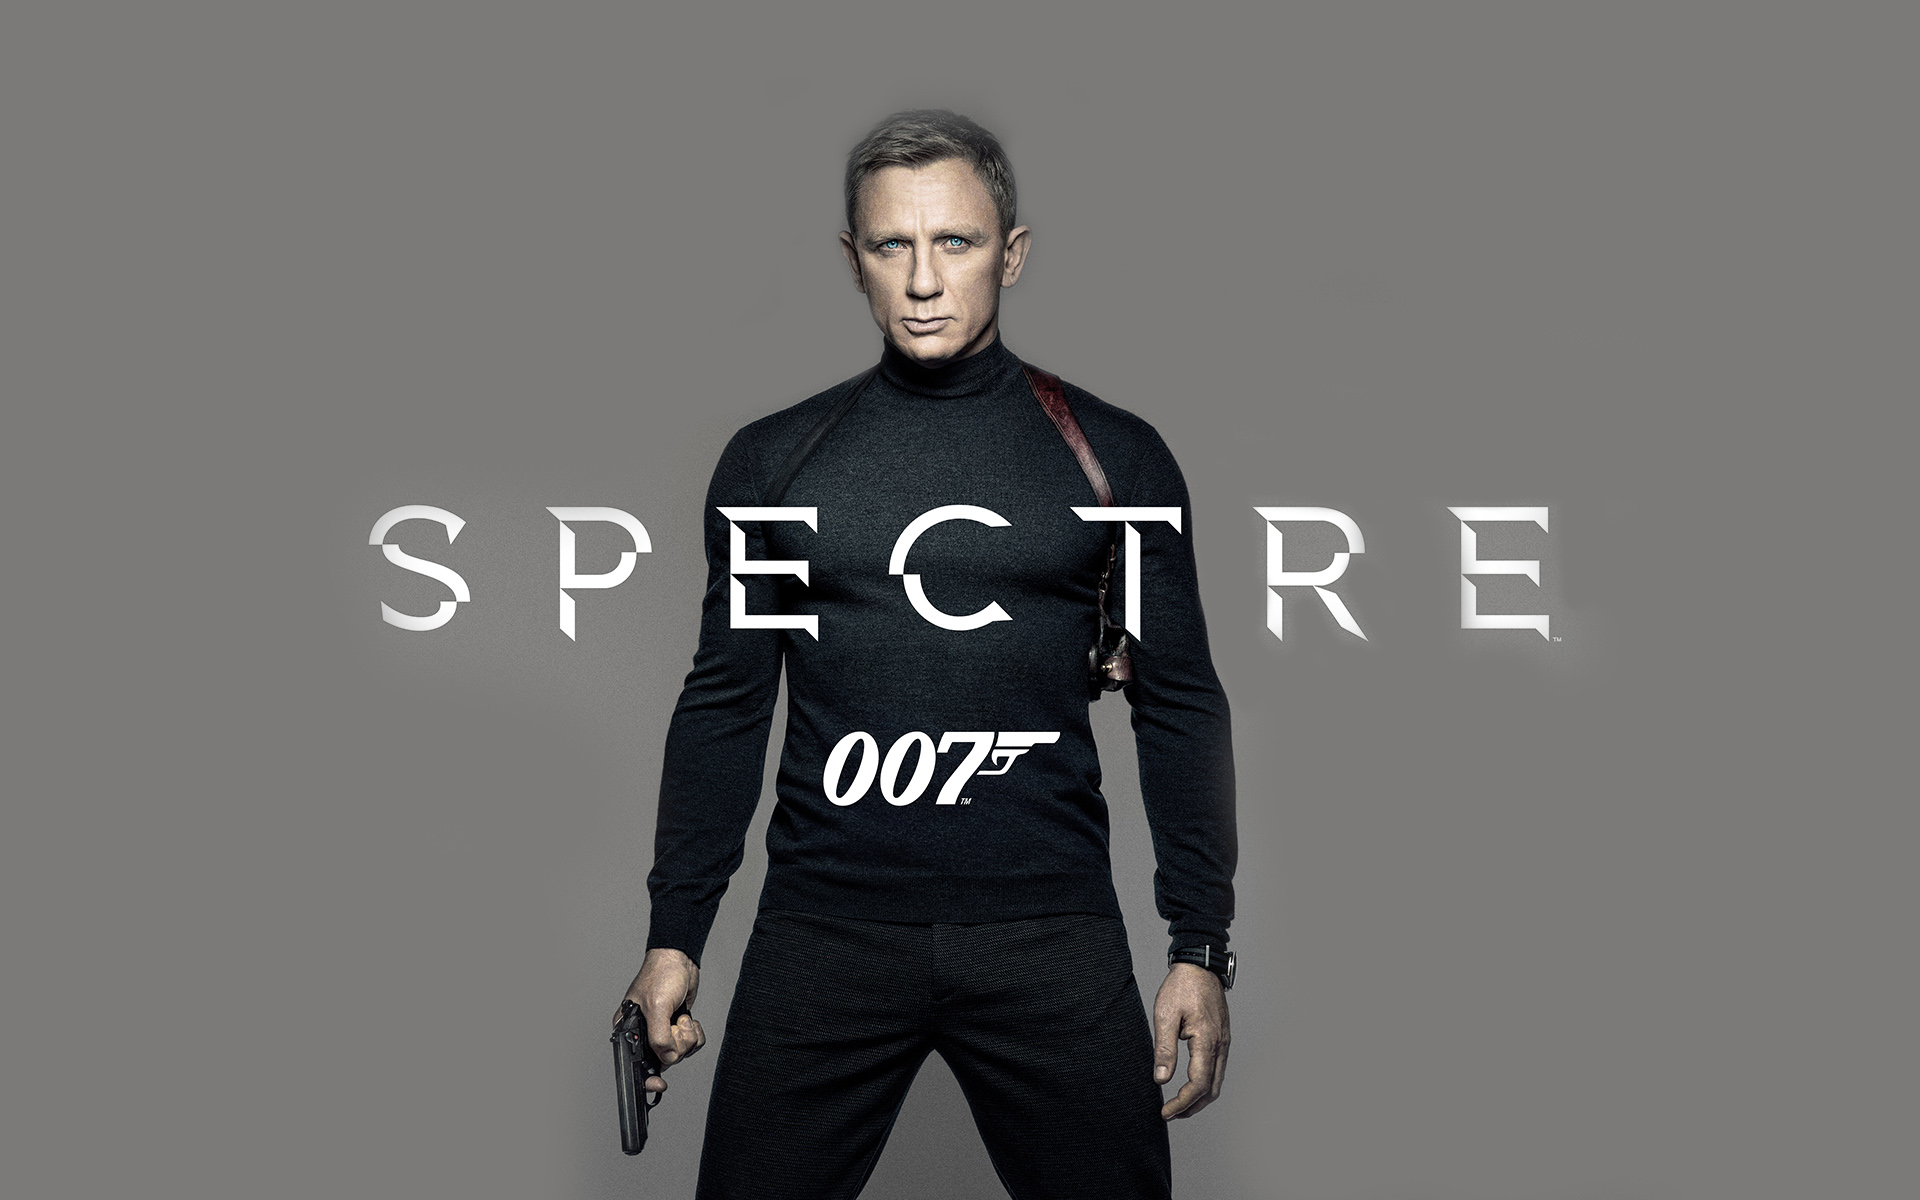 Daniel Craig as James Bond in 2015 Spectre 007 Movie Poster Wallpaper